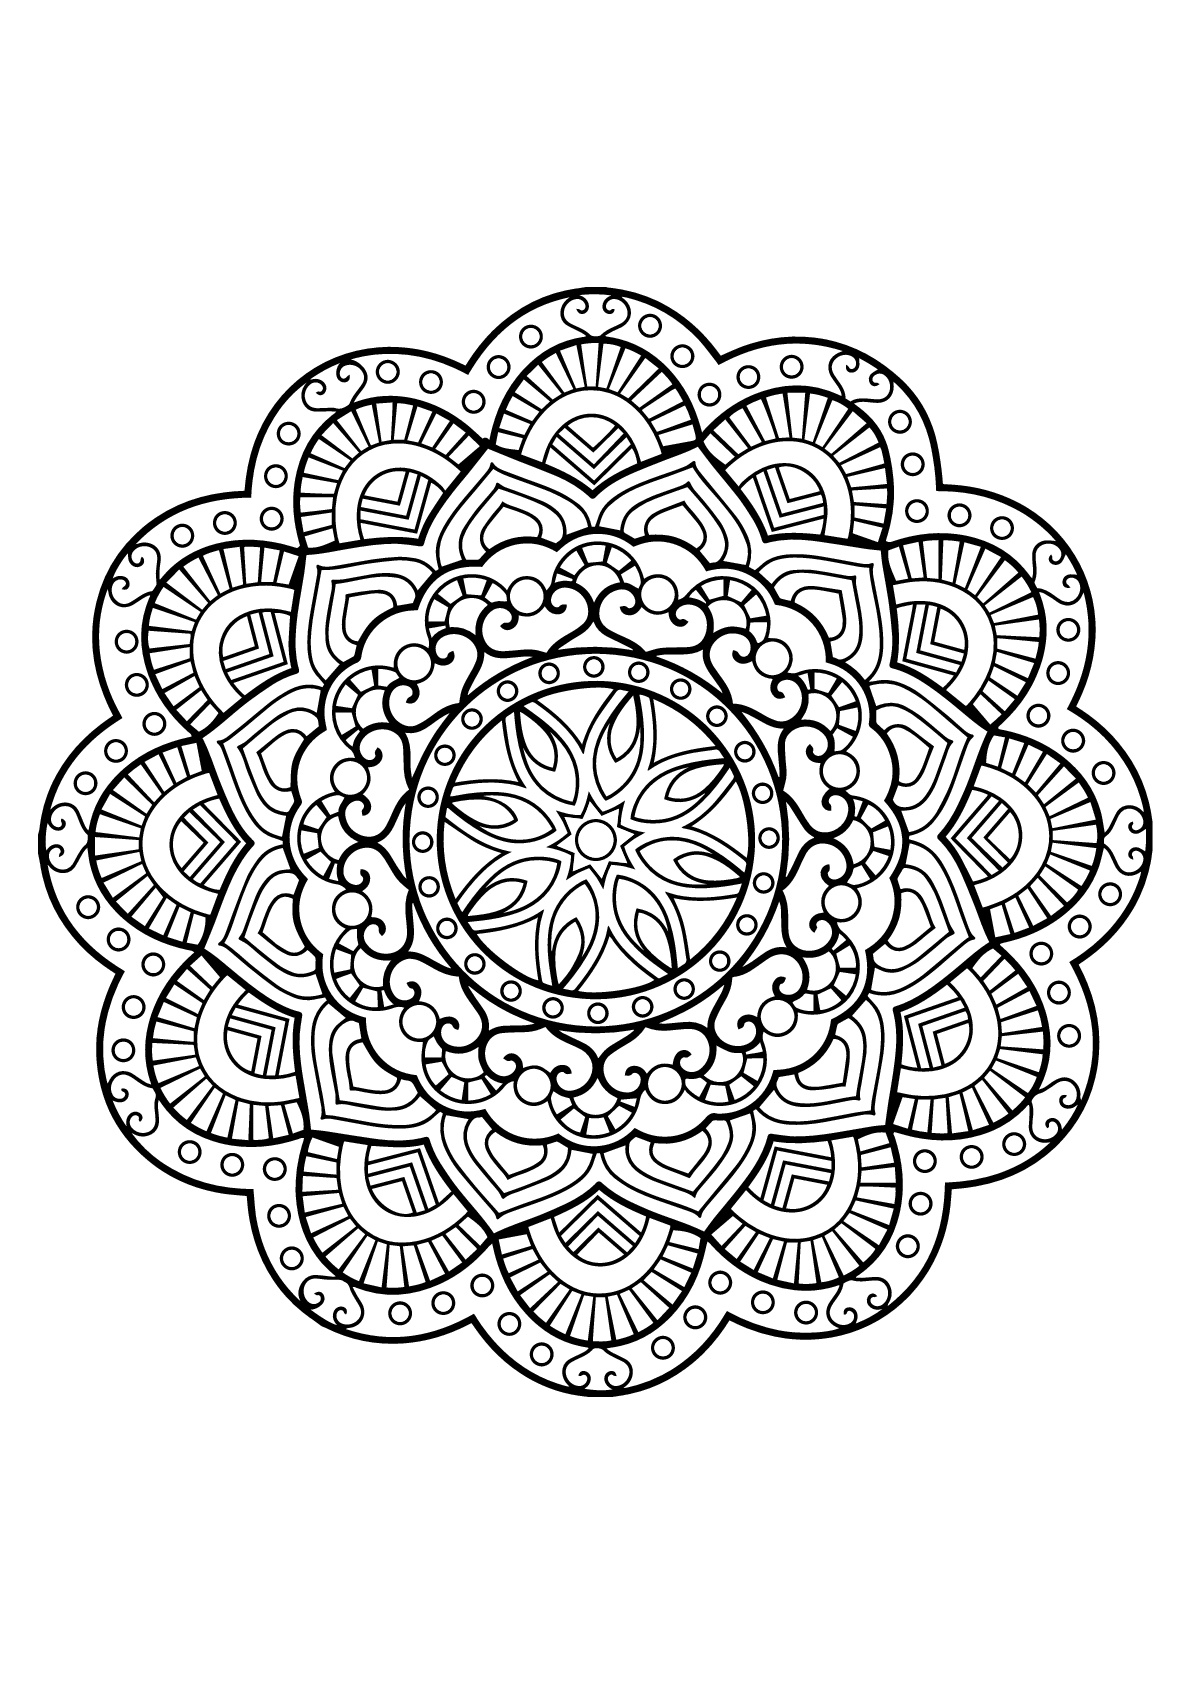 Mandalas Coloring Page To Print And Color